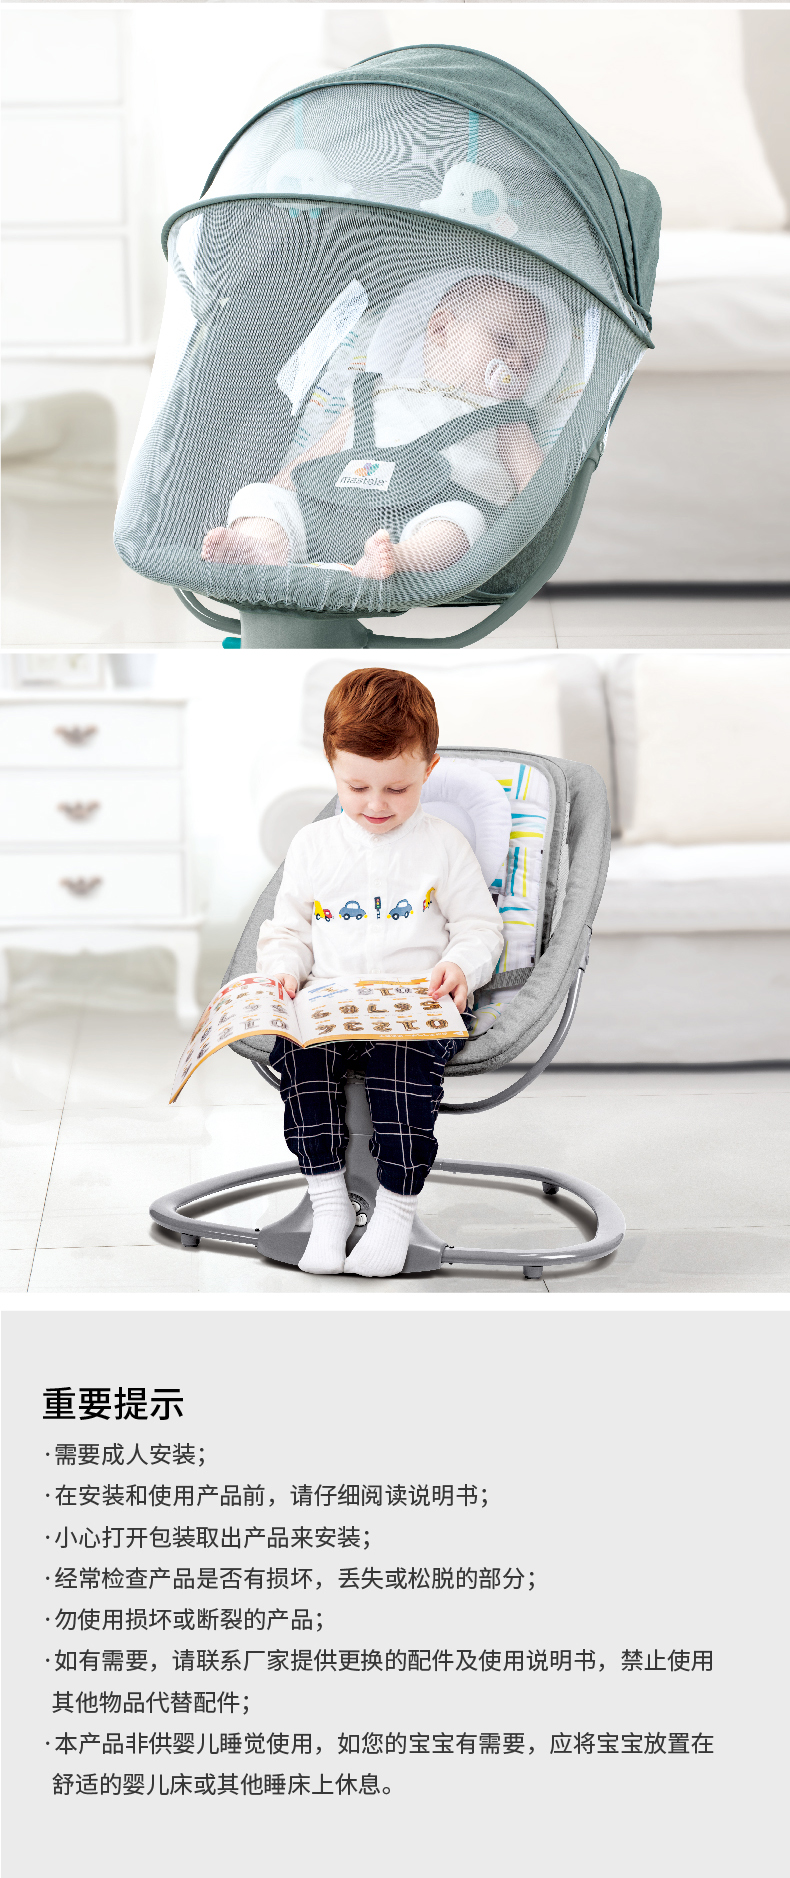 H4a8198f85f0d44a2a50d90c08b280b63m Baby Electric Rocking Chair To Appease Smart Cradle To baby Sleeping Artifact Electric baby Rocking bed Swing